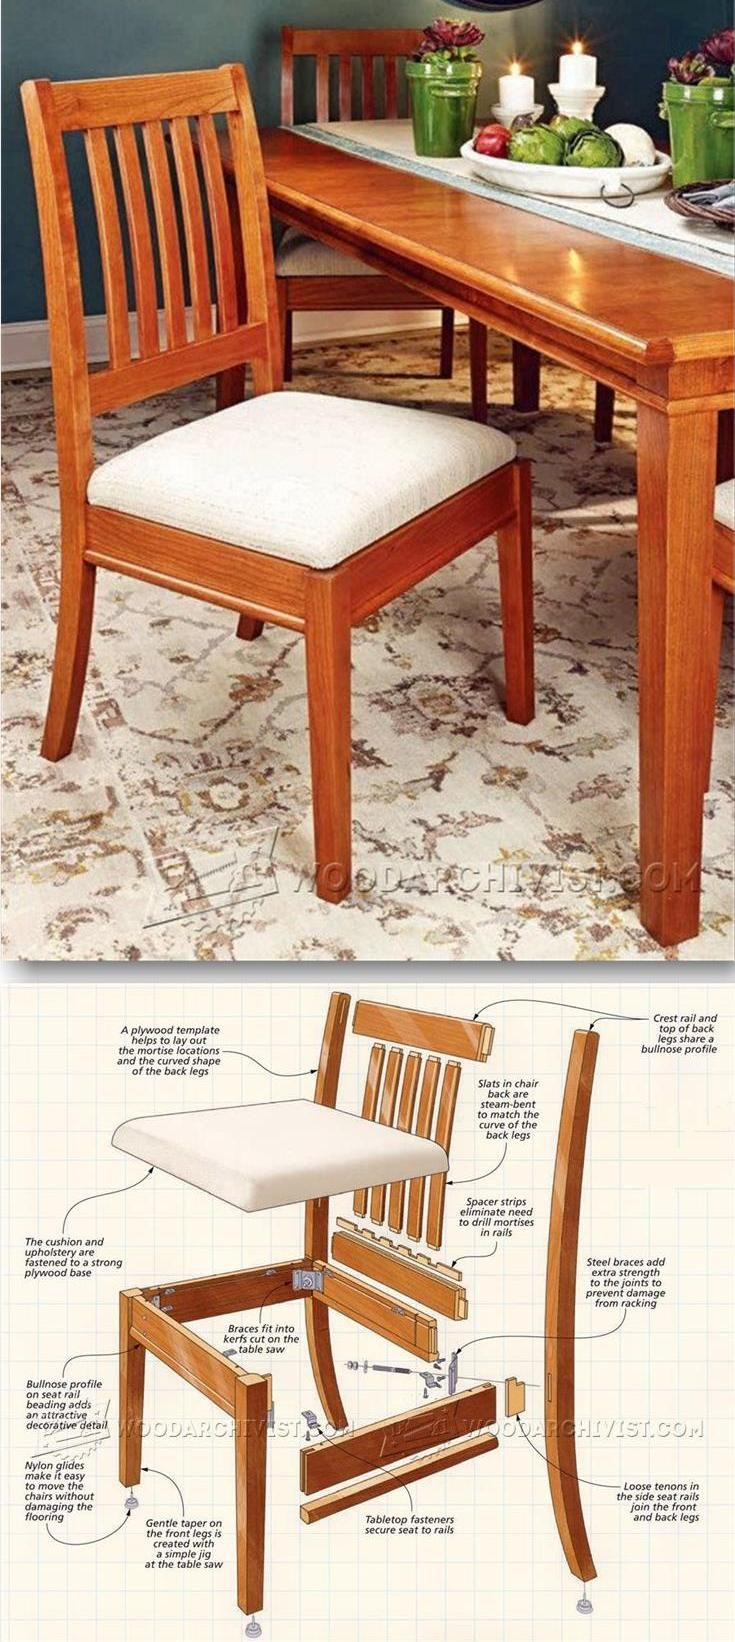 Dining Chair Plans - Furniture Plans and Projects ...